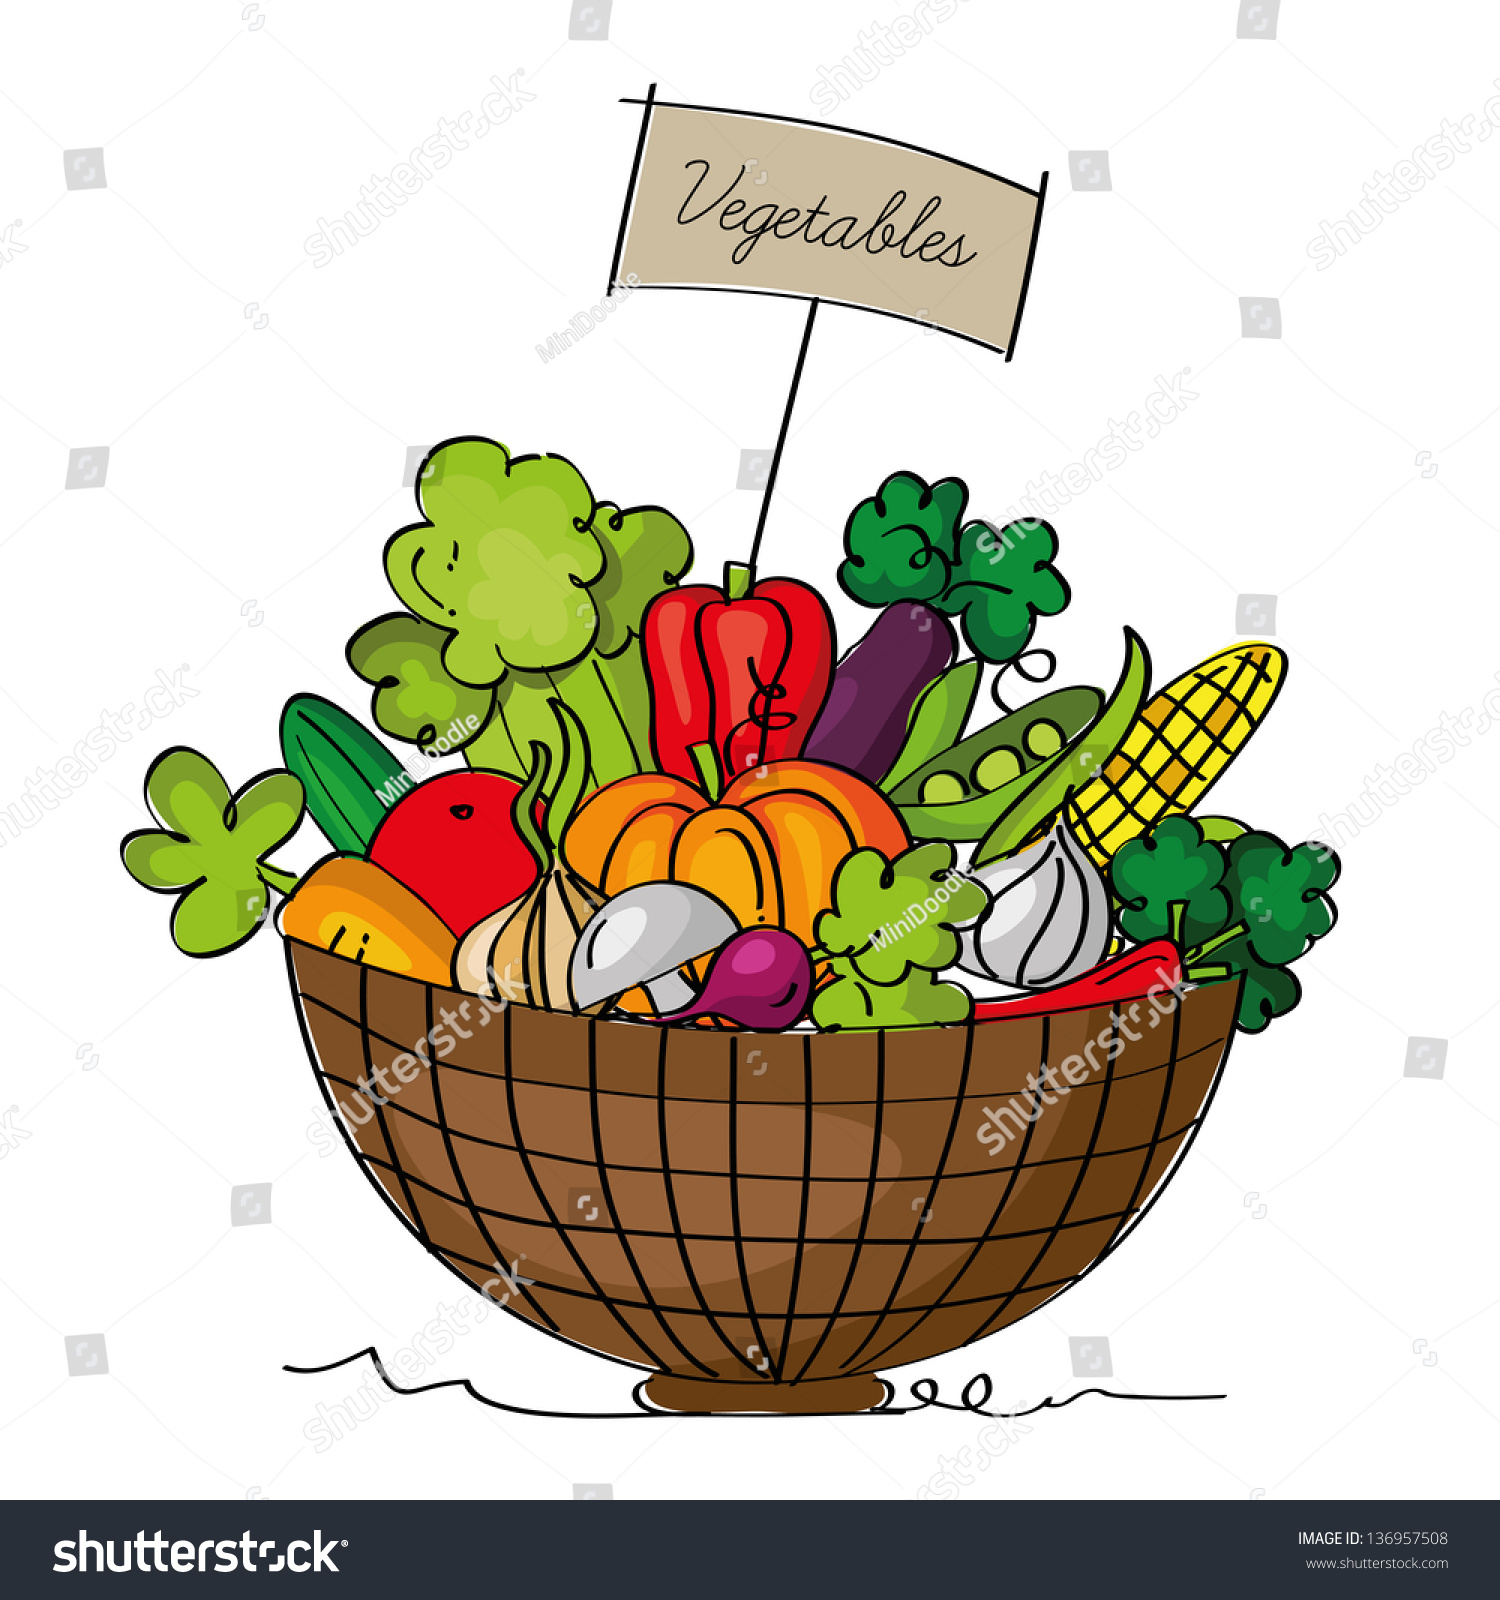 Basket Of Vegetables Clipart : Basket vegetables isolated on white background stock